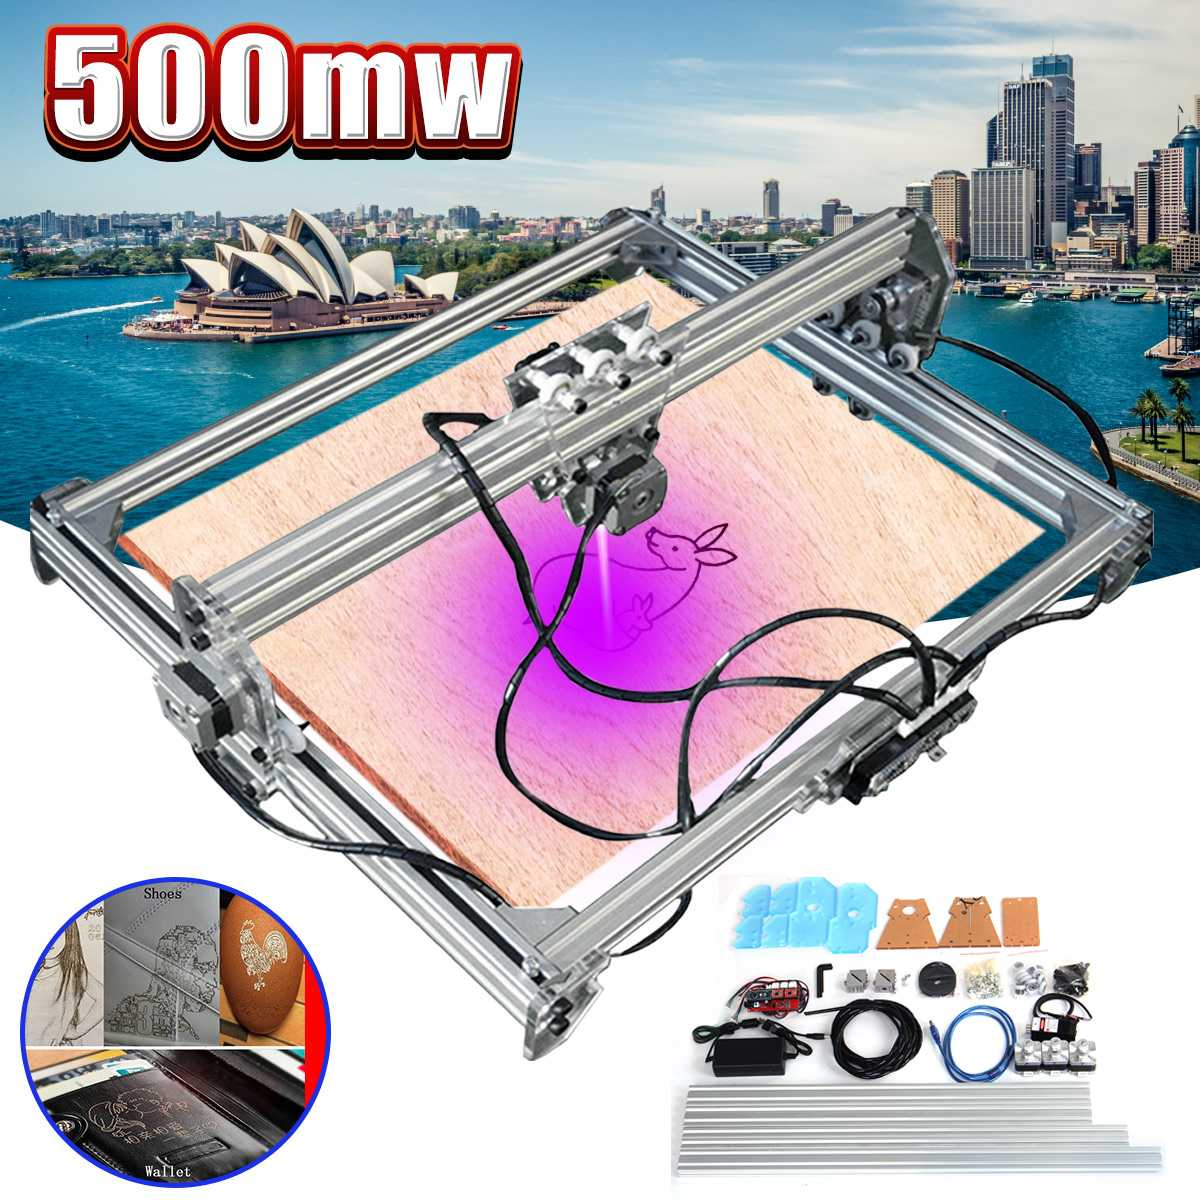 65x50cm DC 12V 500mW Laser Engraving Engraver Cutting DIY Desktop Mini Wood Cutter/Printer Marking Printer Logo Carving Machine